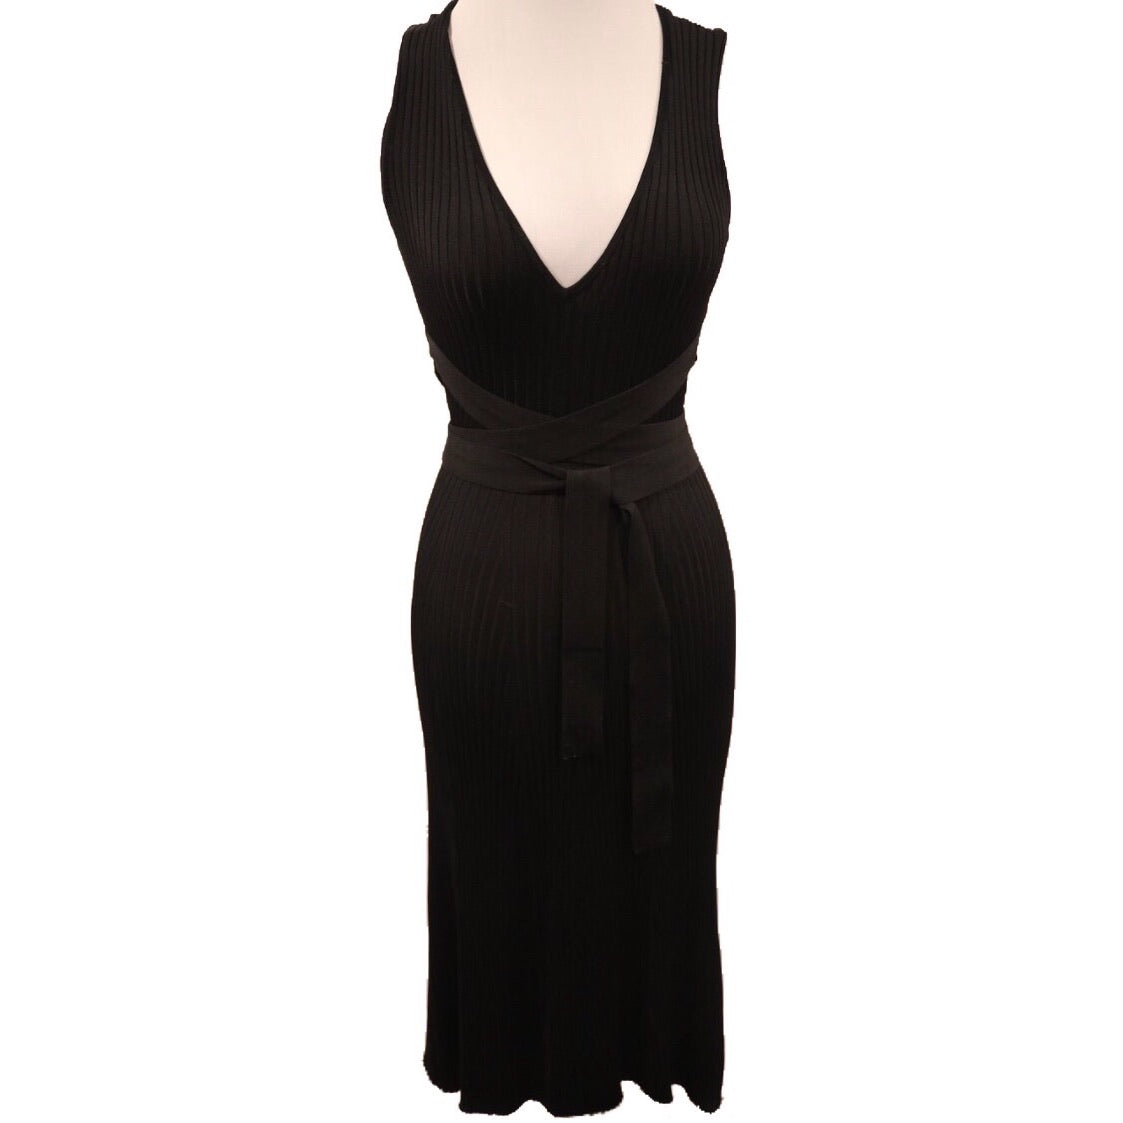 BCBGMAXAZRIA Black Knit Sleeveless Dress Size XXS